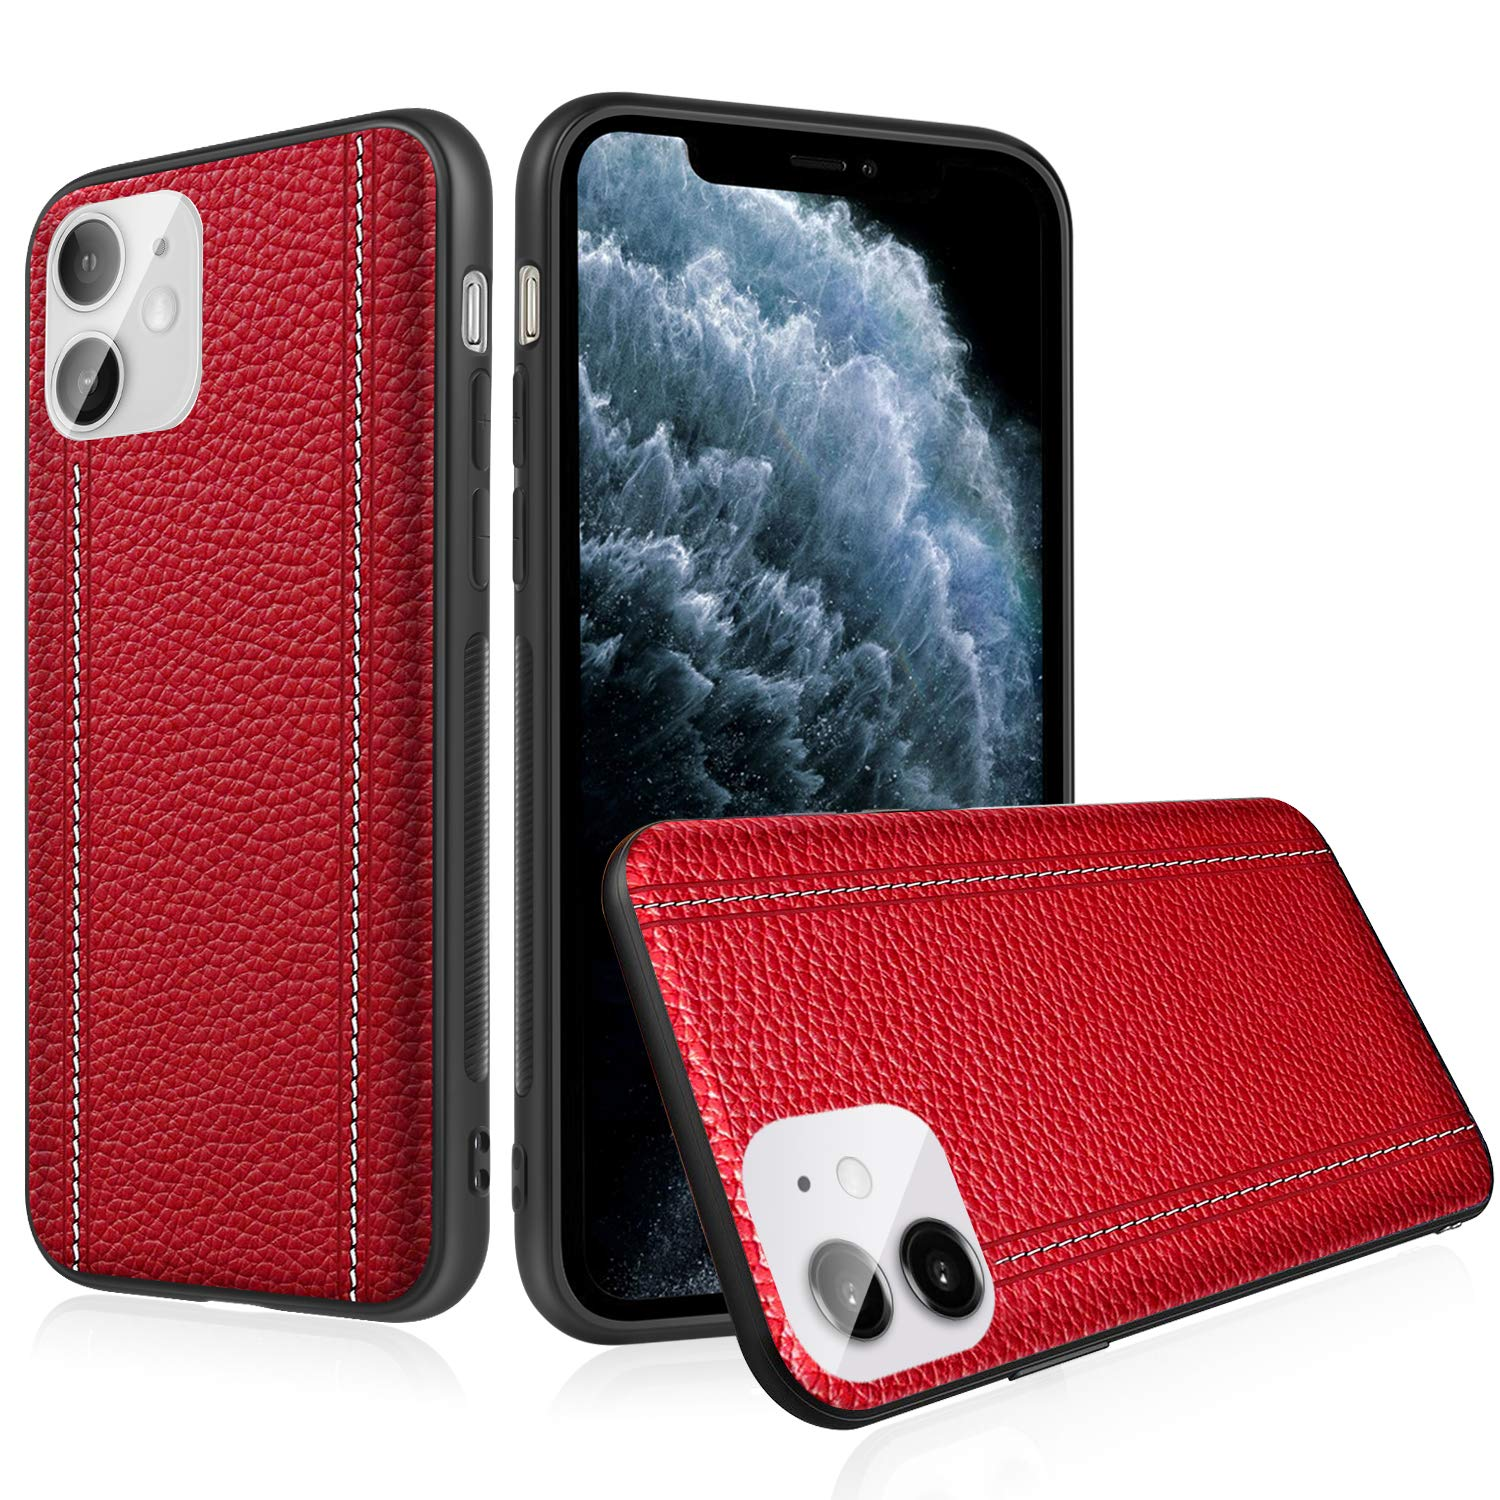 iPhone 11 Pro Max Leather Case Cover - Thin Luxury Premium Genuine Leather No-PU Soft Flexible Bumper Non-Wallet Anti-Slip Scratch Protective Business iPhone 11 6.5'' Cover Work with Wireless Charging